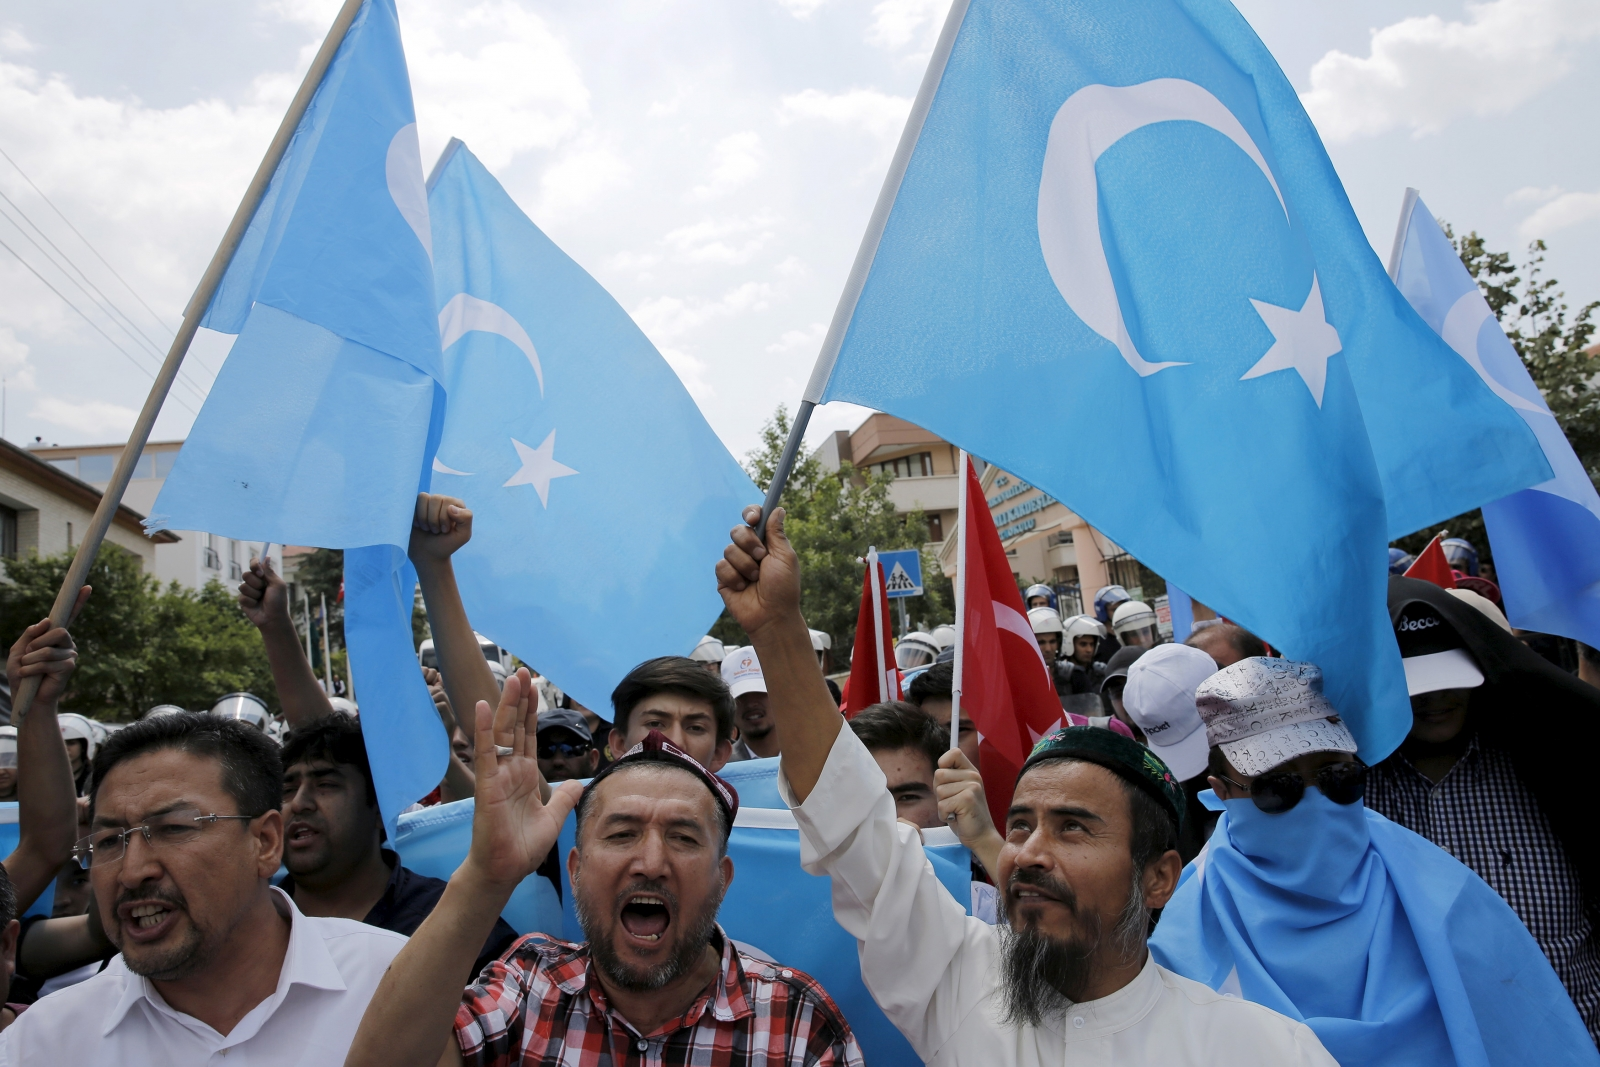 TURKEY UIGHURS